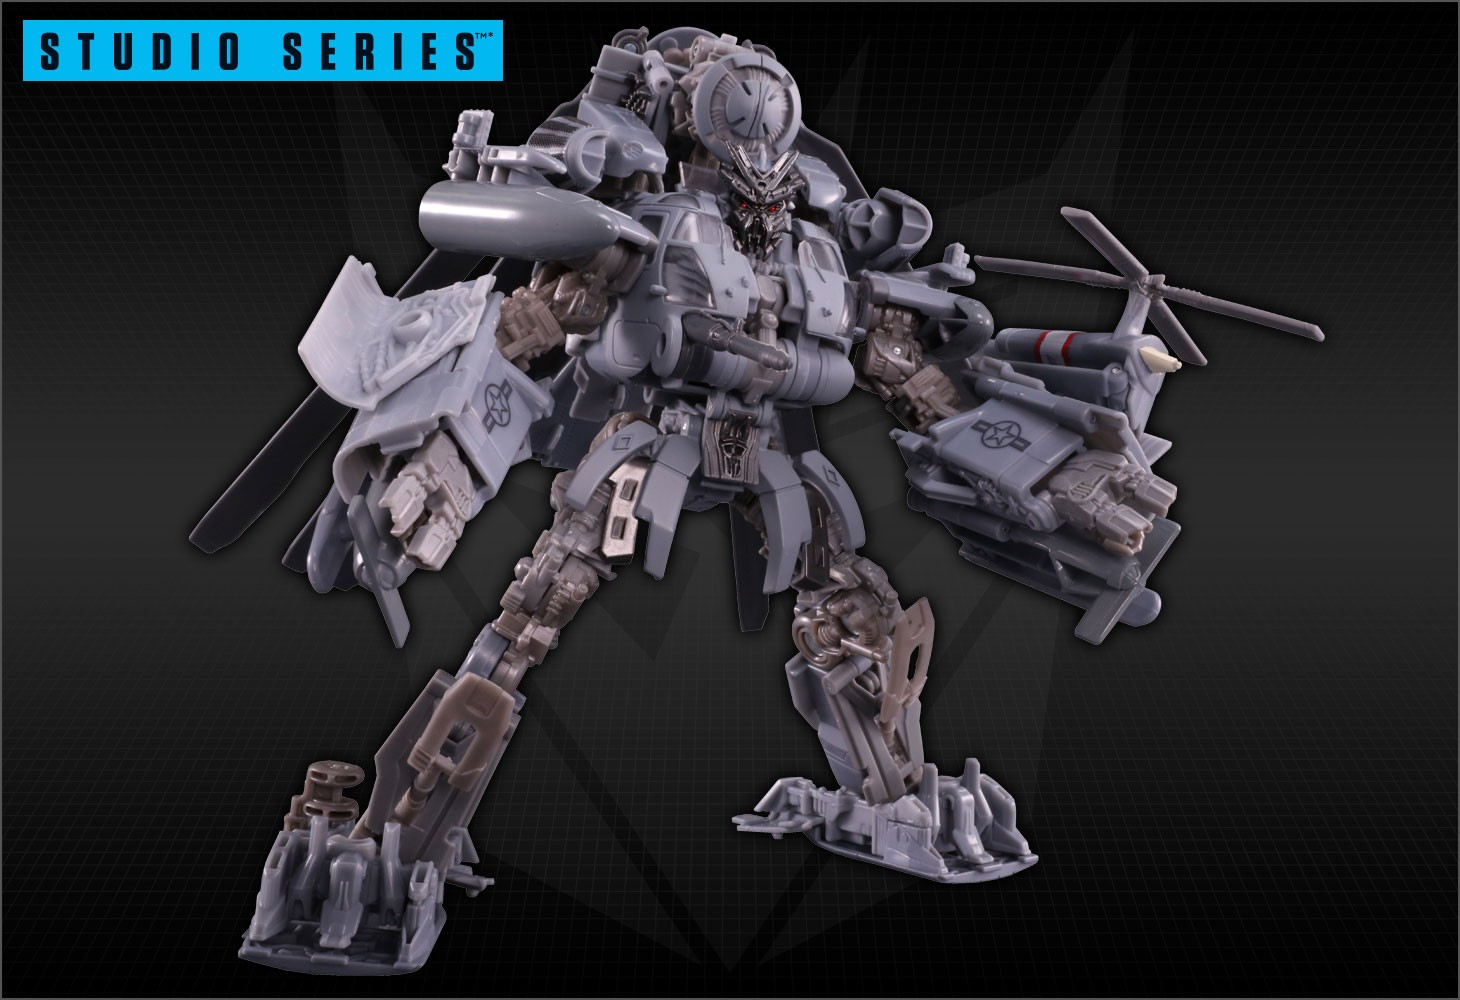 Transformers News: Takara's Official Images for Studio Series Grimlock, Blackout  + Scorponok, and Starscream